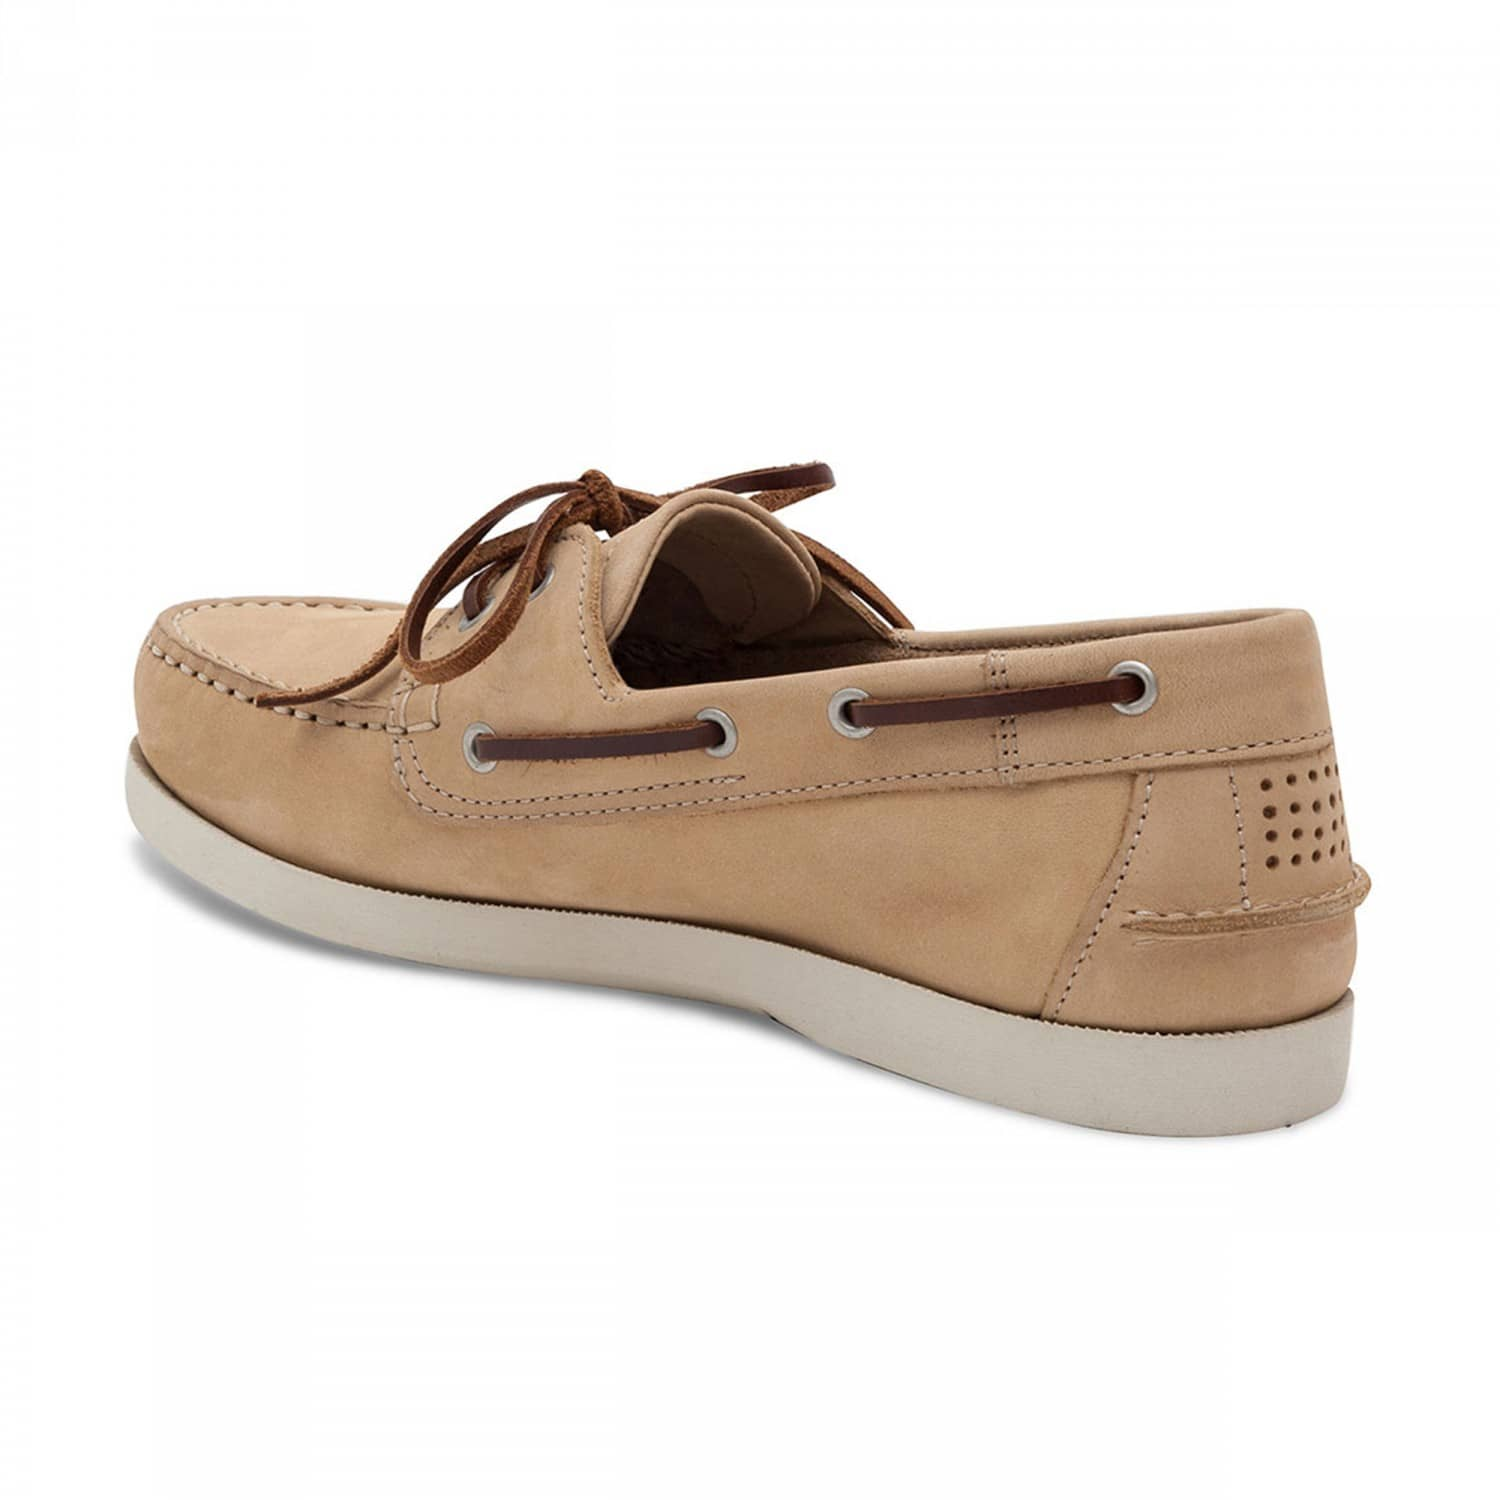 Buy Boat shoes PHENIS | TBS